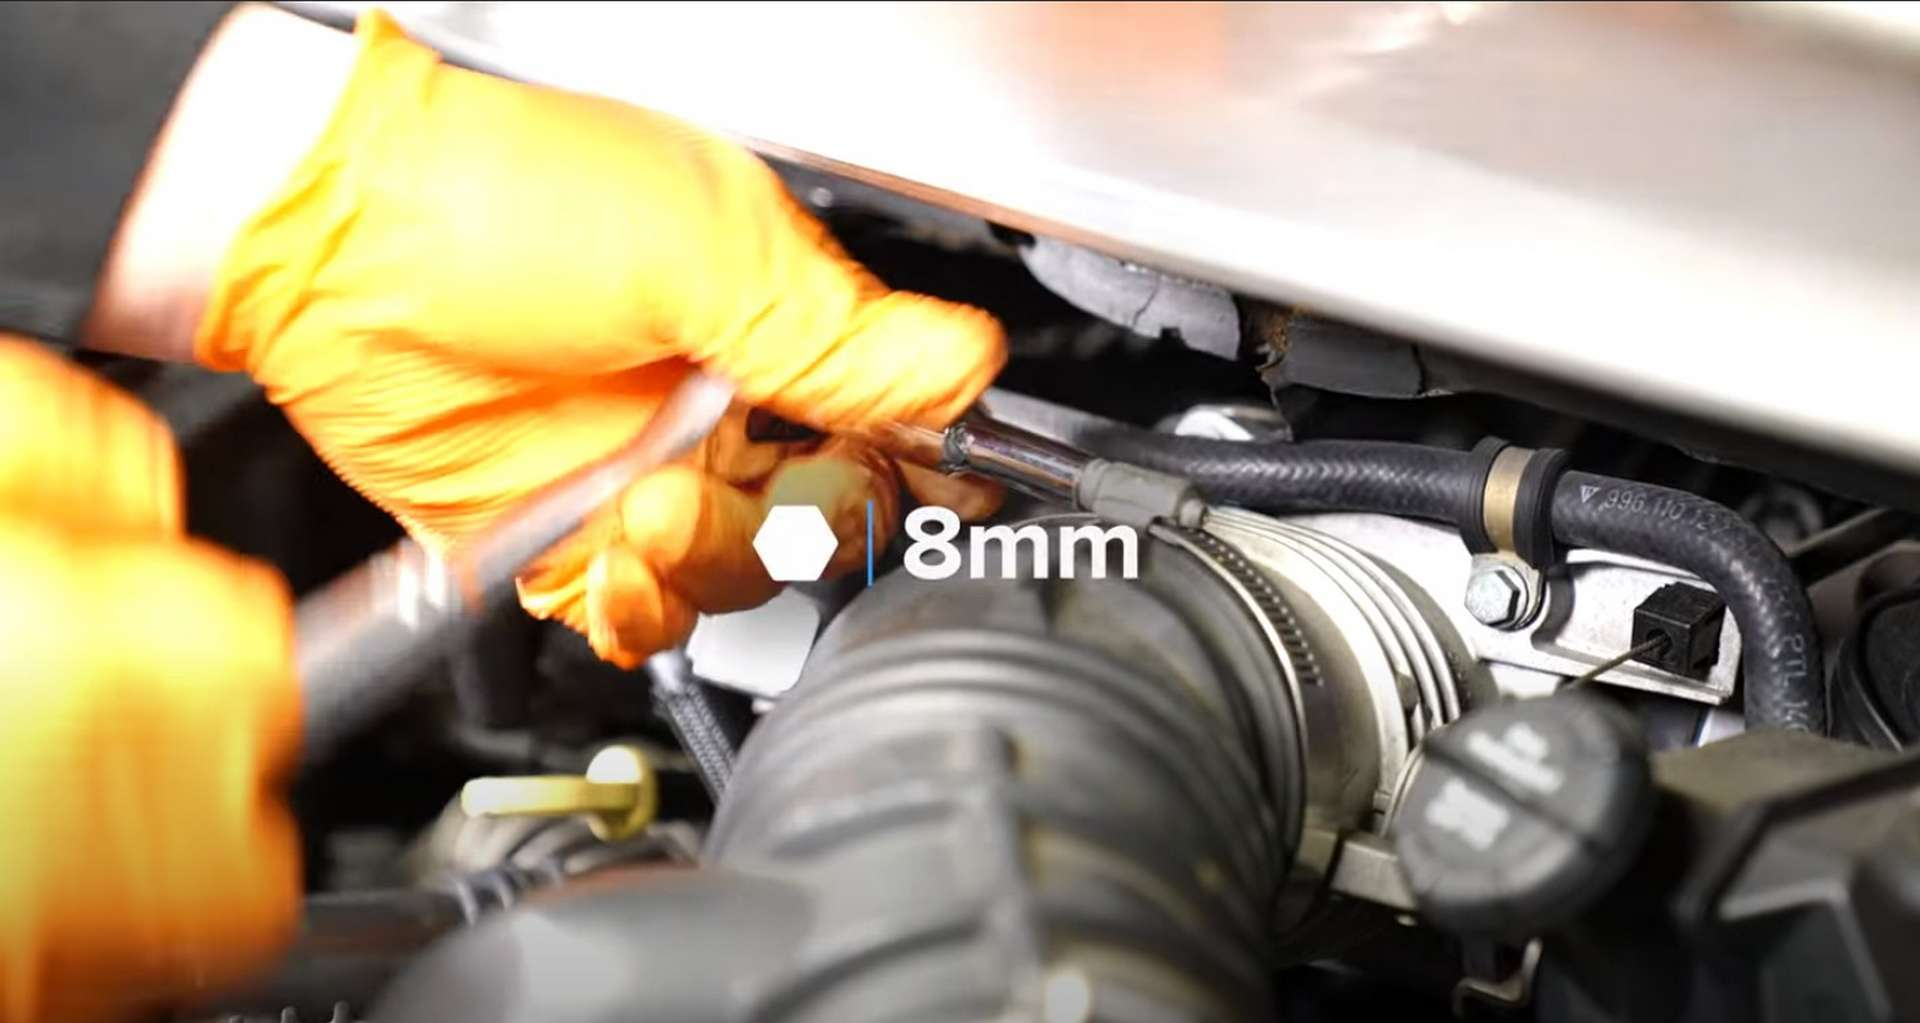 Porsche 996 Water Pump And Thermostat Replacement loosening the intake hose clamp on the throttle body